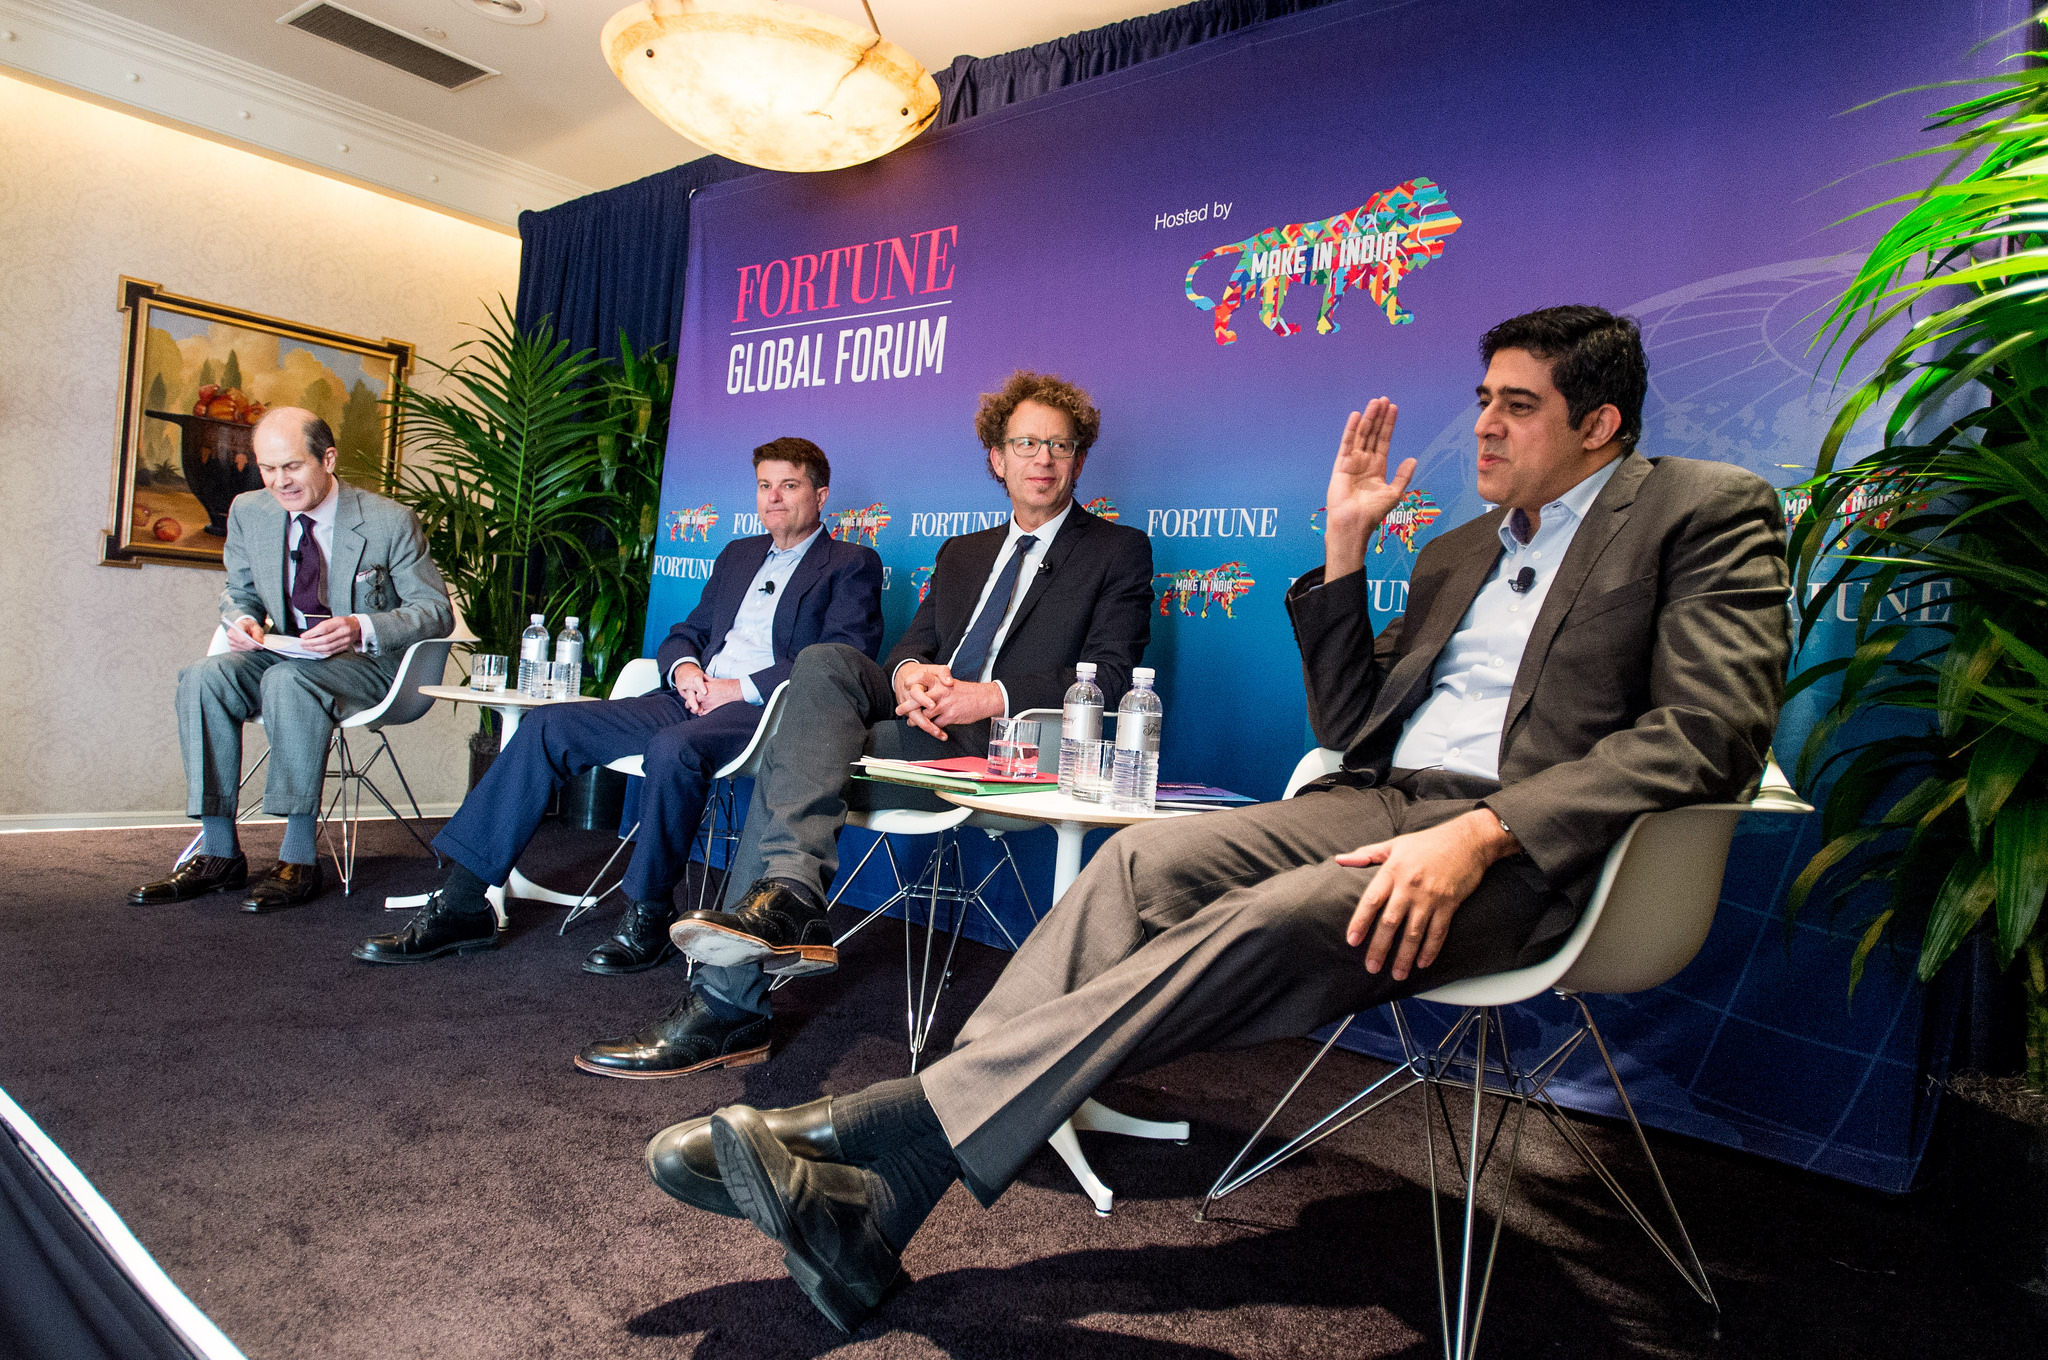 FORTUNE GLOBAL FORUM Wednesday, November 4th, 2015 2015 FORTUNE GLOBAL FORUM  San Francisco, CA, USA  Geoff Colvin, Fortune; Martin Ford, Author, The Rise of the Robots: Technology and the Rise of the Jobless Future; Ken Goldberg, Professor of Engineering and Director, People and Robots Initiative, University of California, Berkeley; Rajan R. Navani, Vice Chairman & Managing Director, Jetline Group of Companies